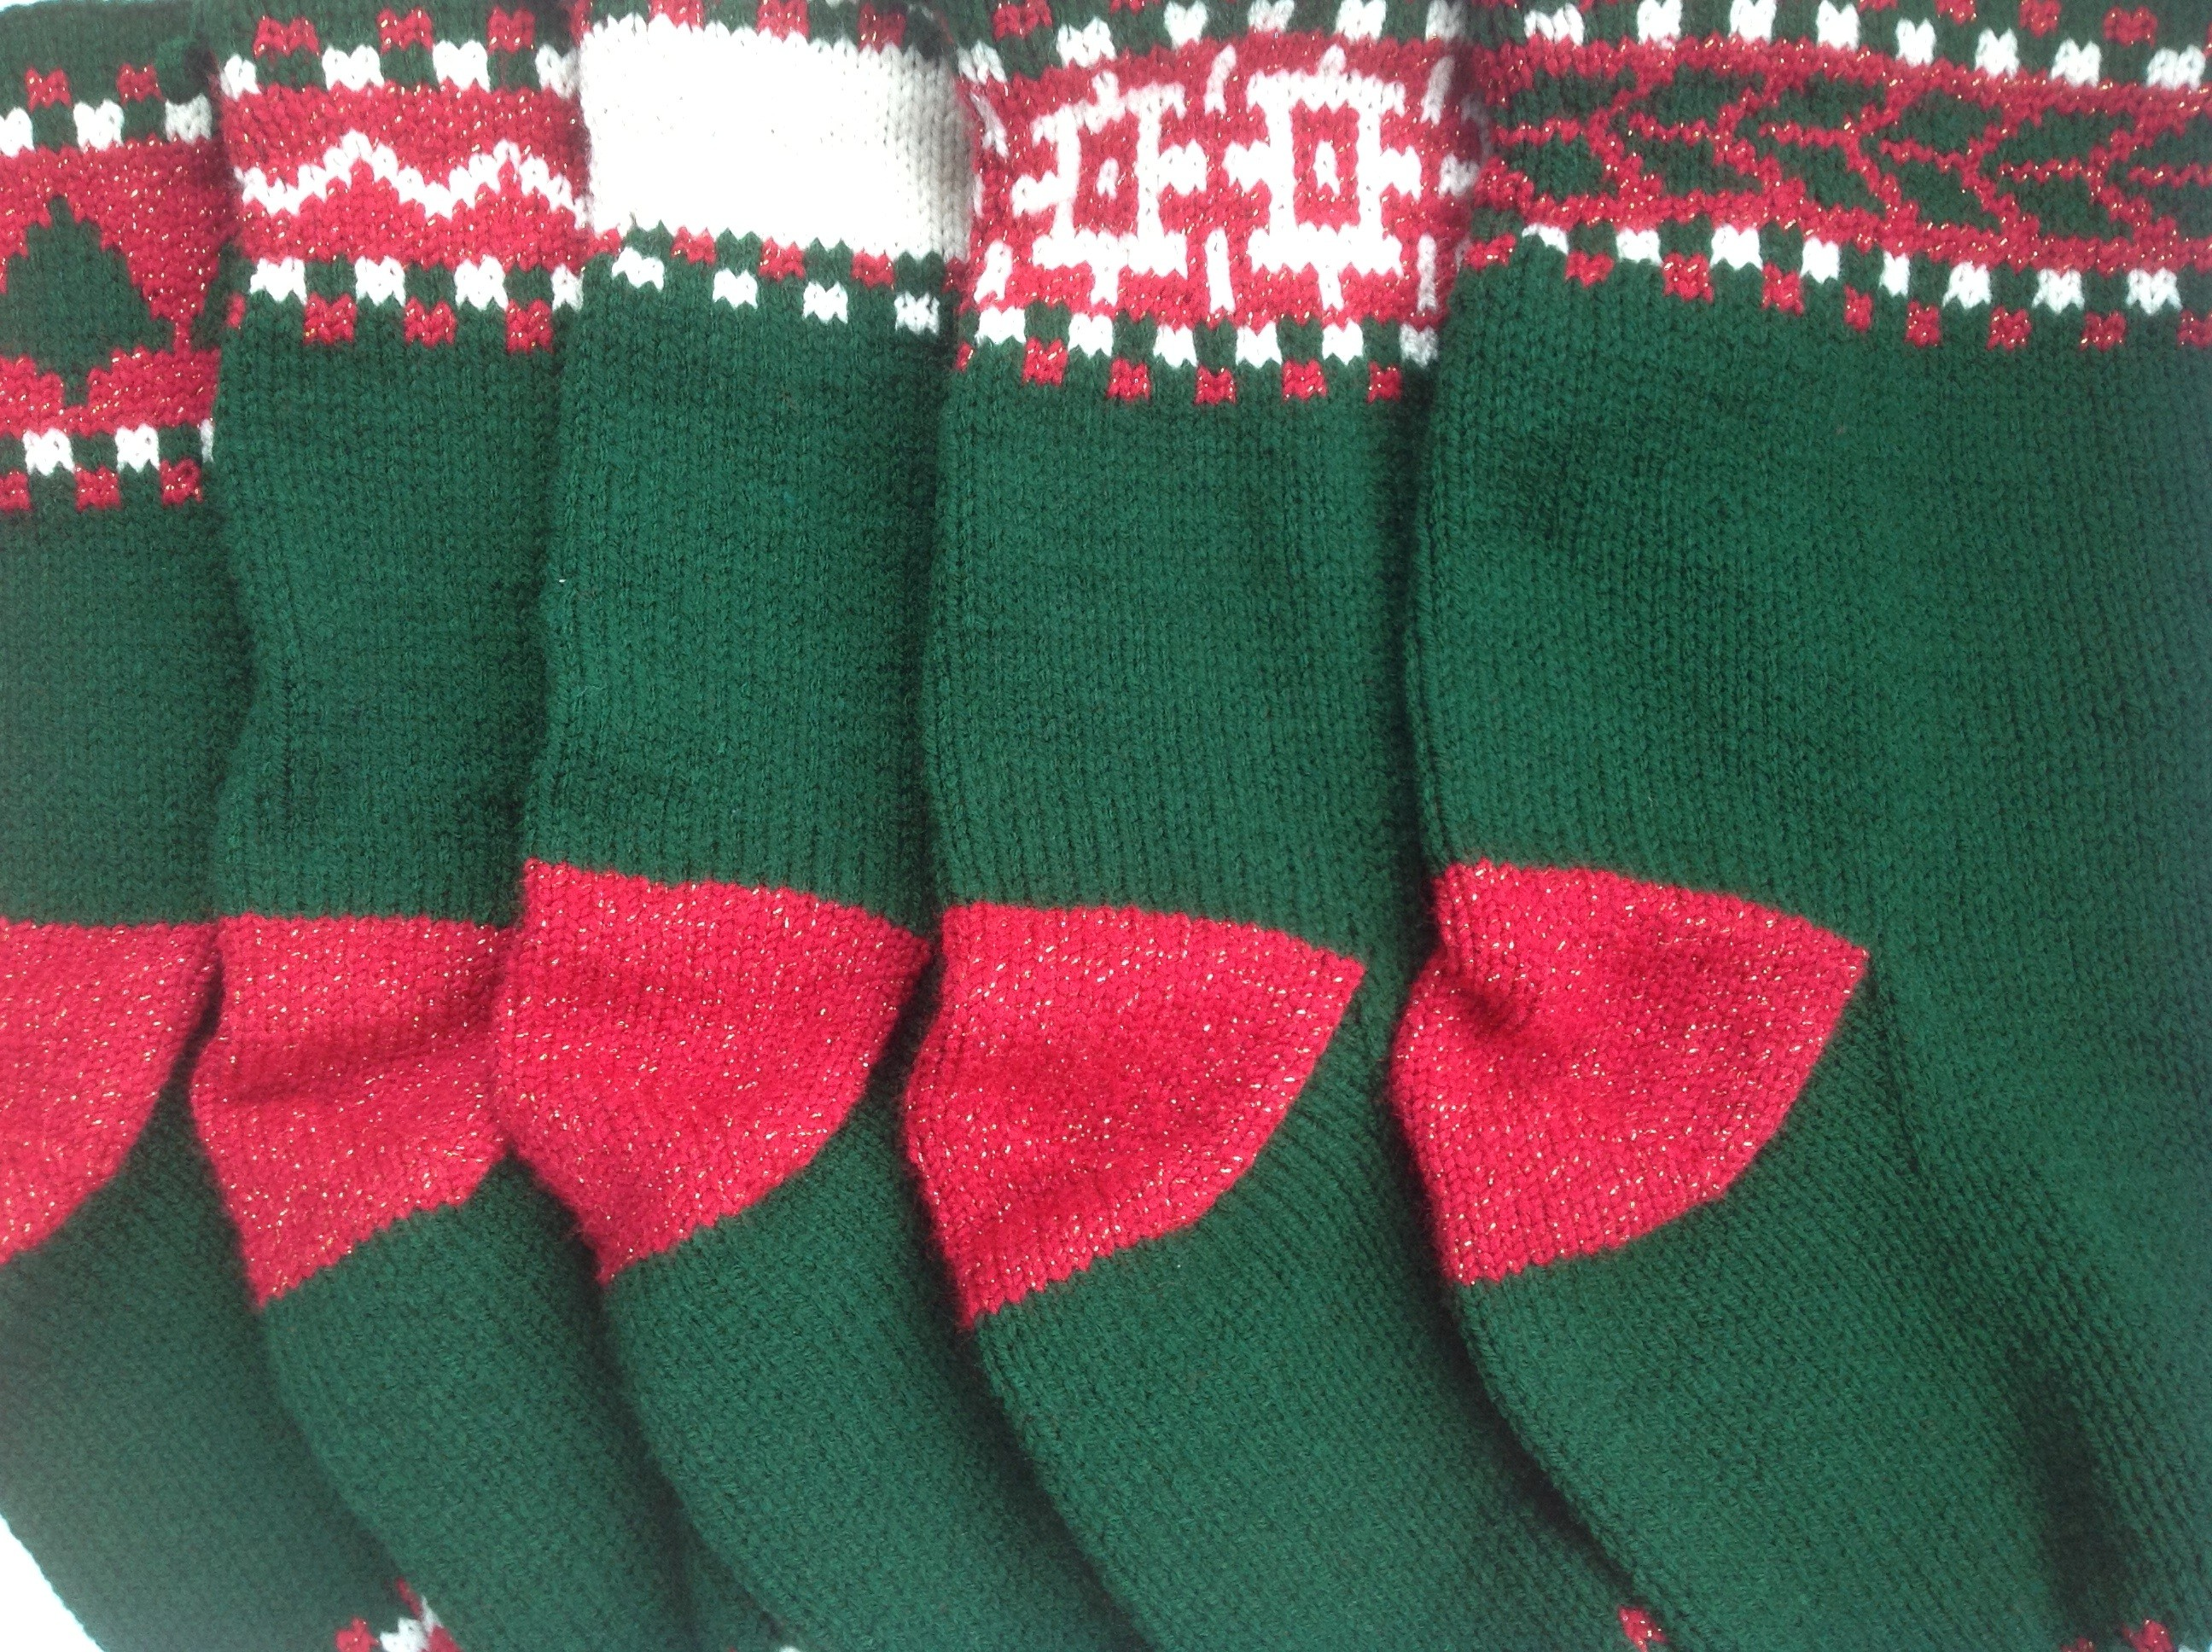 Enchanting knit christmas stockings with multicolorful christmas stocking and fireplace at chistmas day interior design